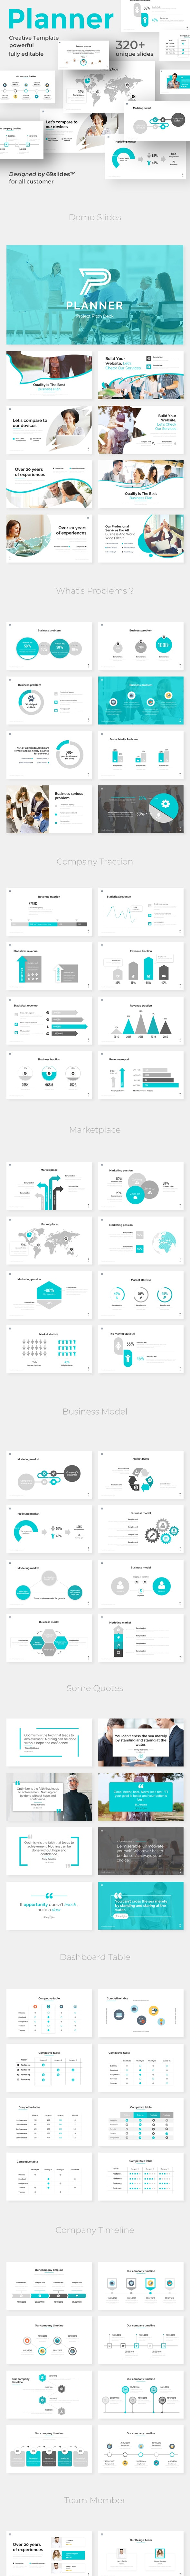 Project Planner Pitch Deck Keynote Template - Business Keynote Templates